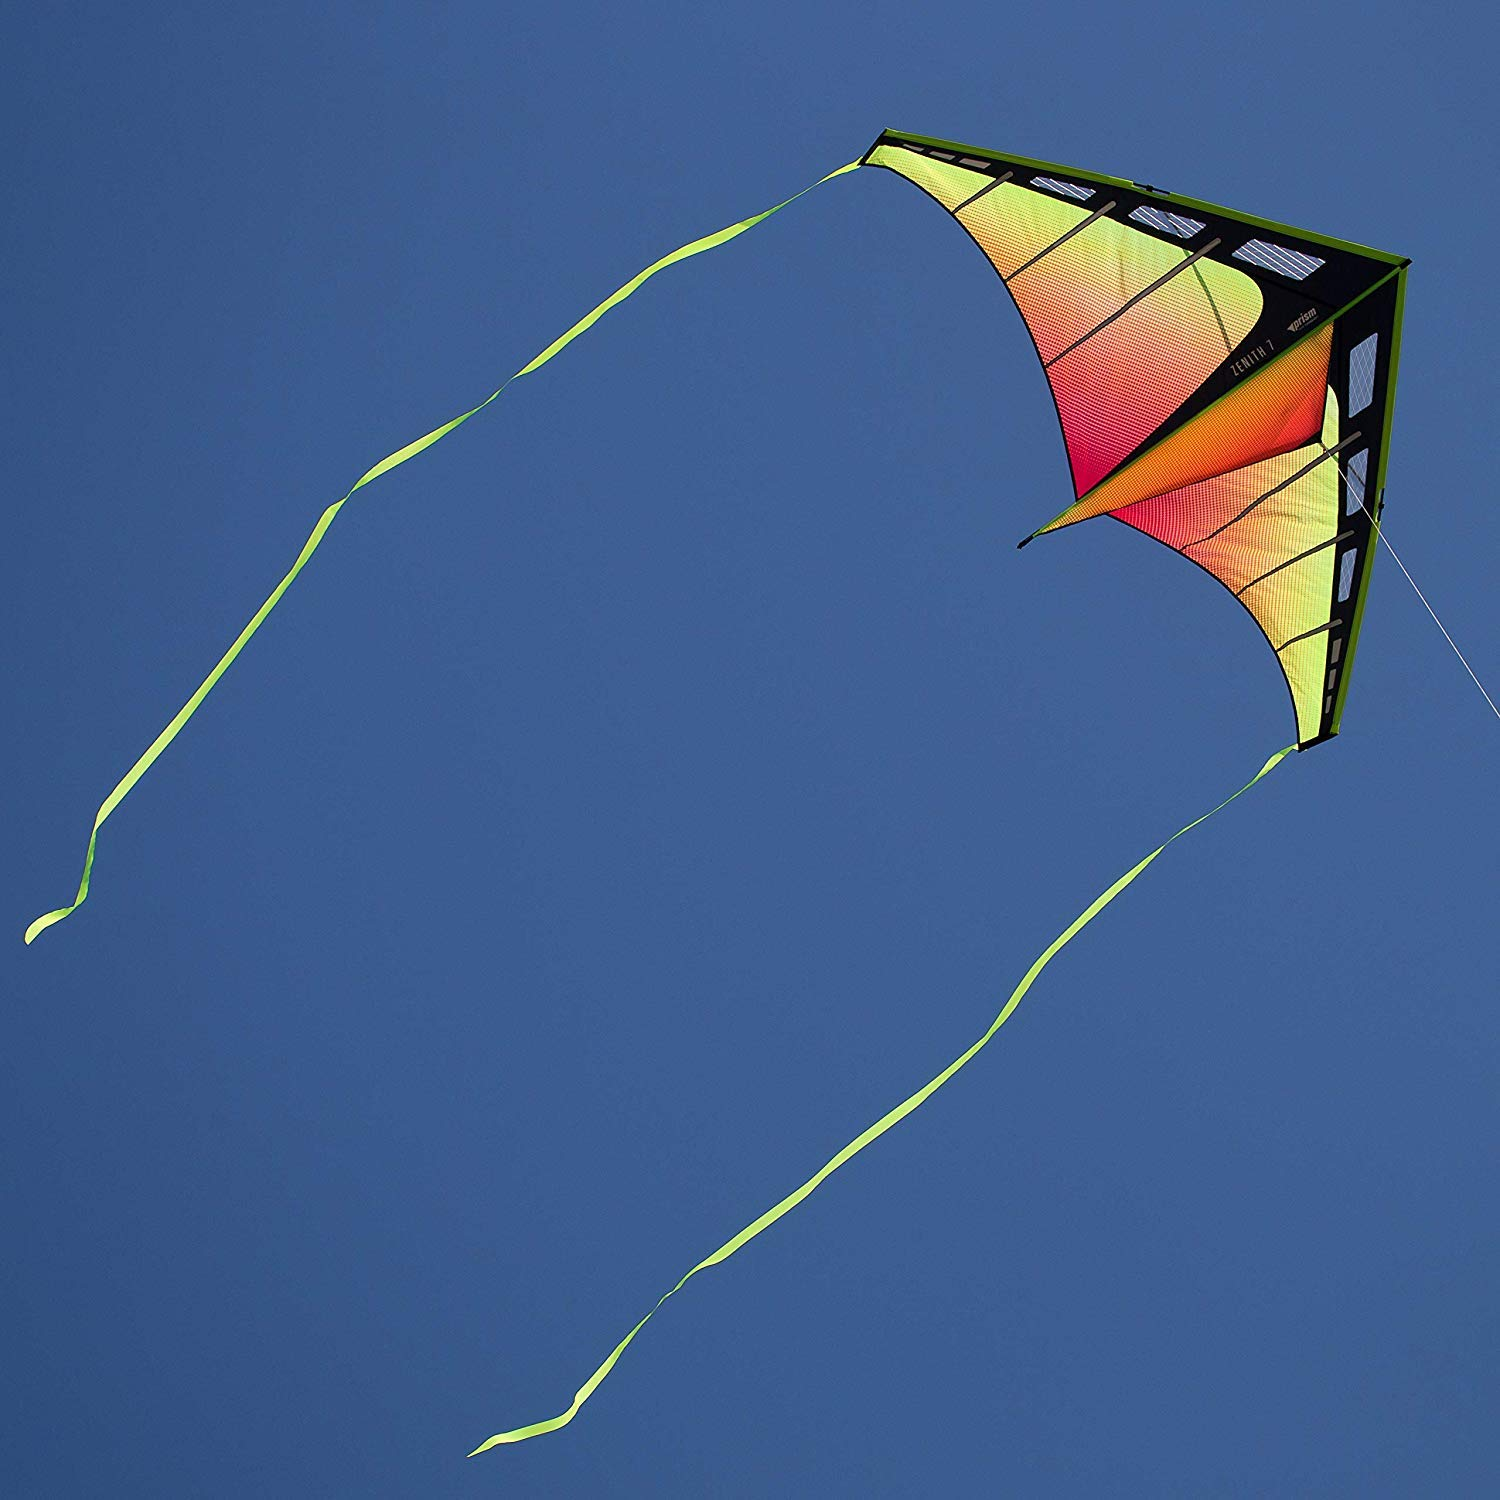 Prism Kite Technology Zenith 7 Infrared Single Line Kite, Ready to Fly with line, Winder and Travel Sleeve by Prism Kite Technology (Image #3)